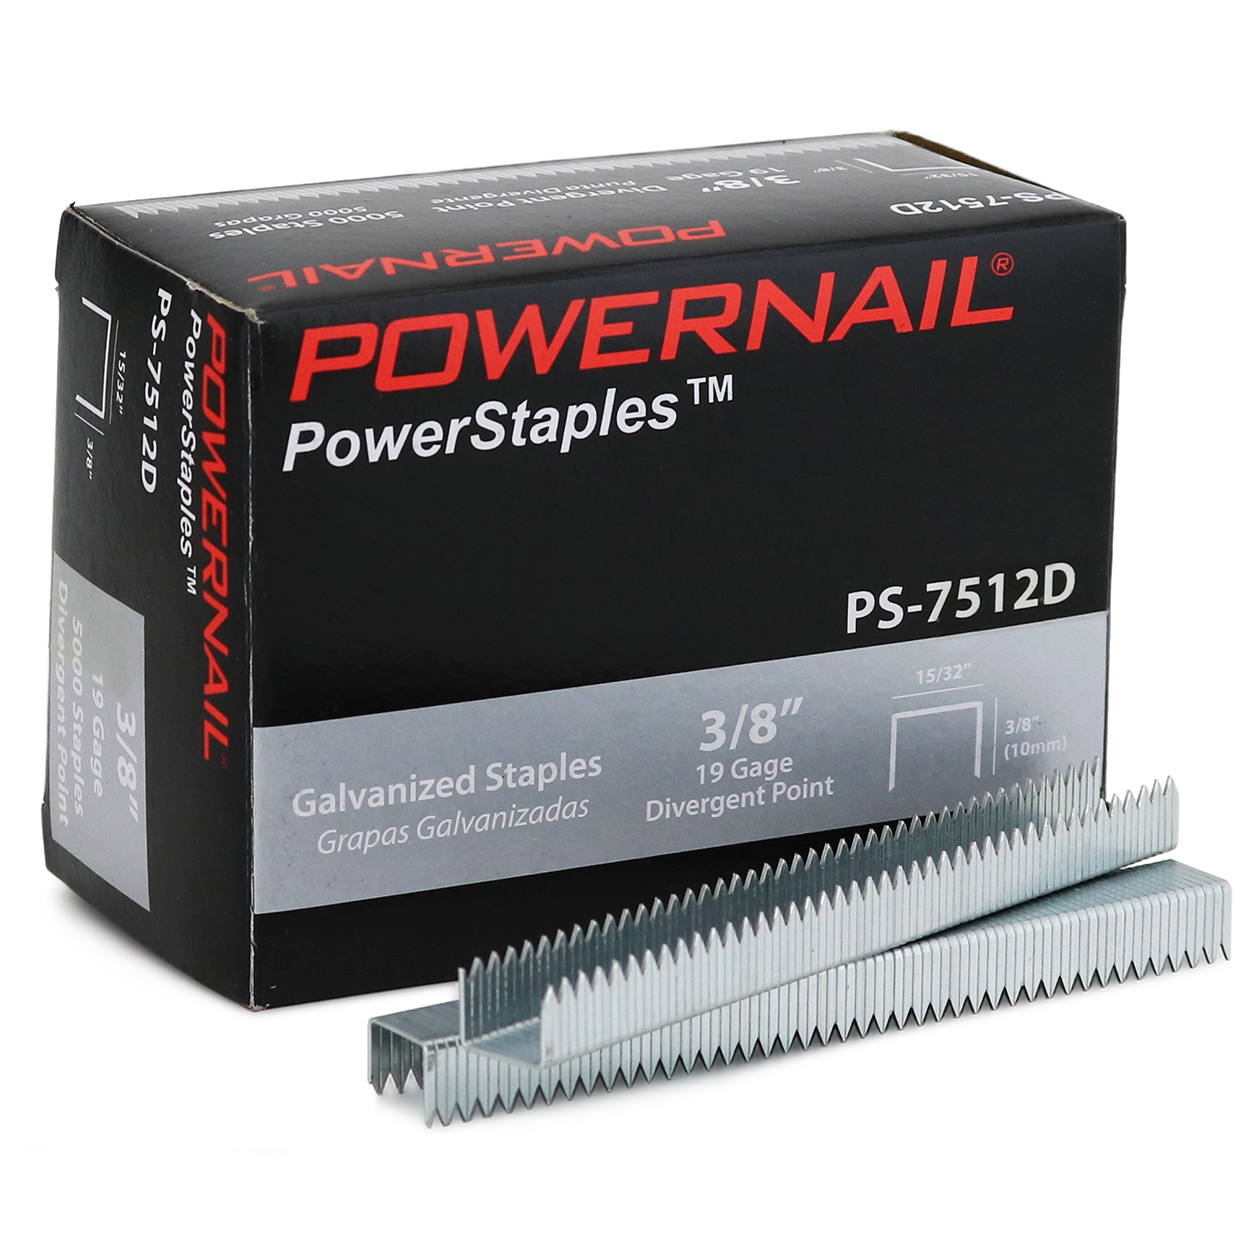 Powernail PS7512D staples